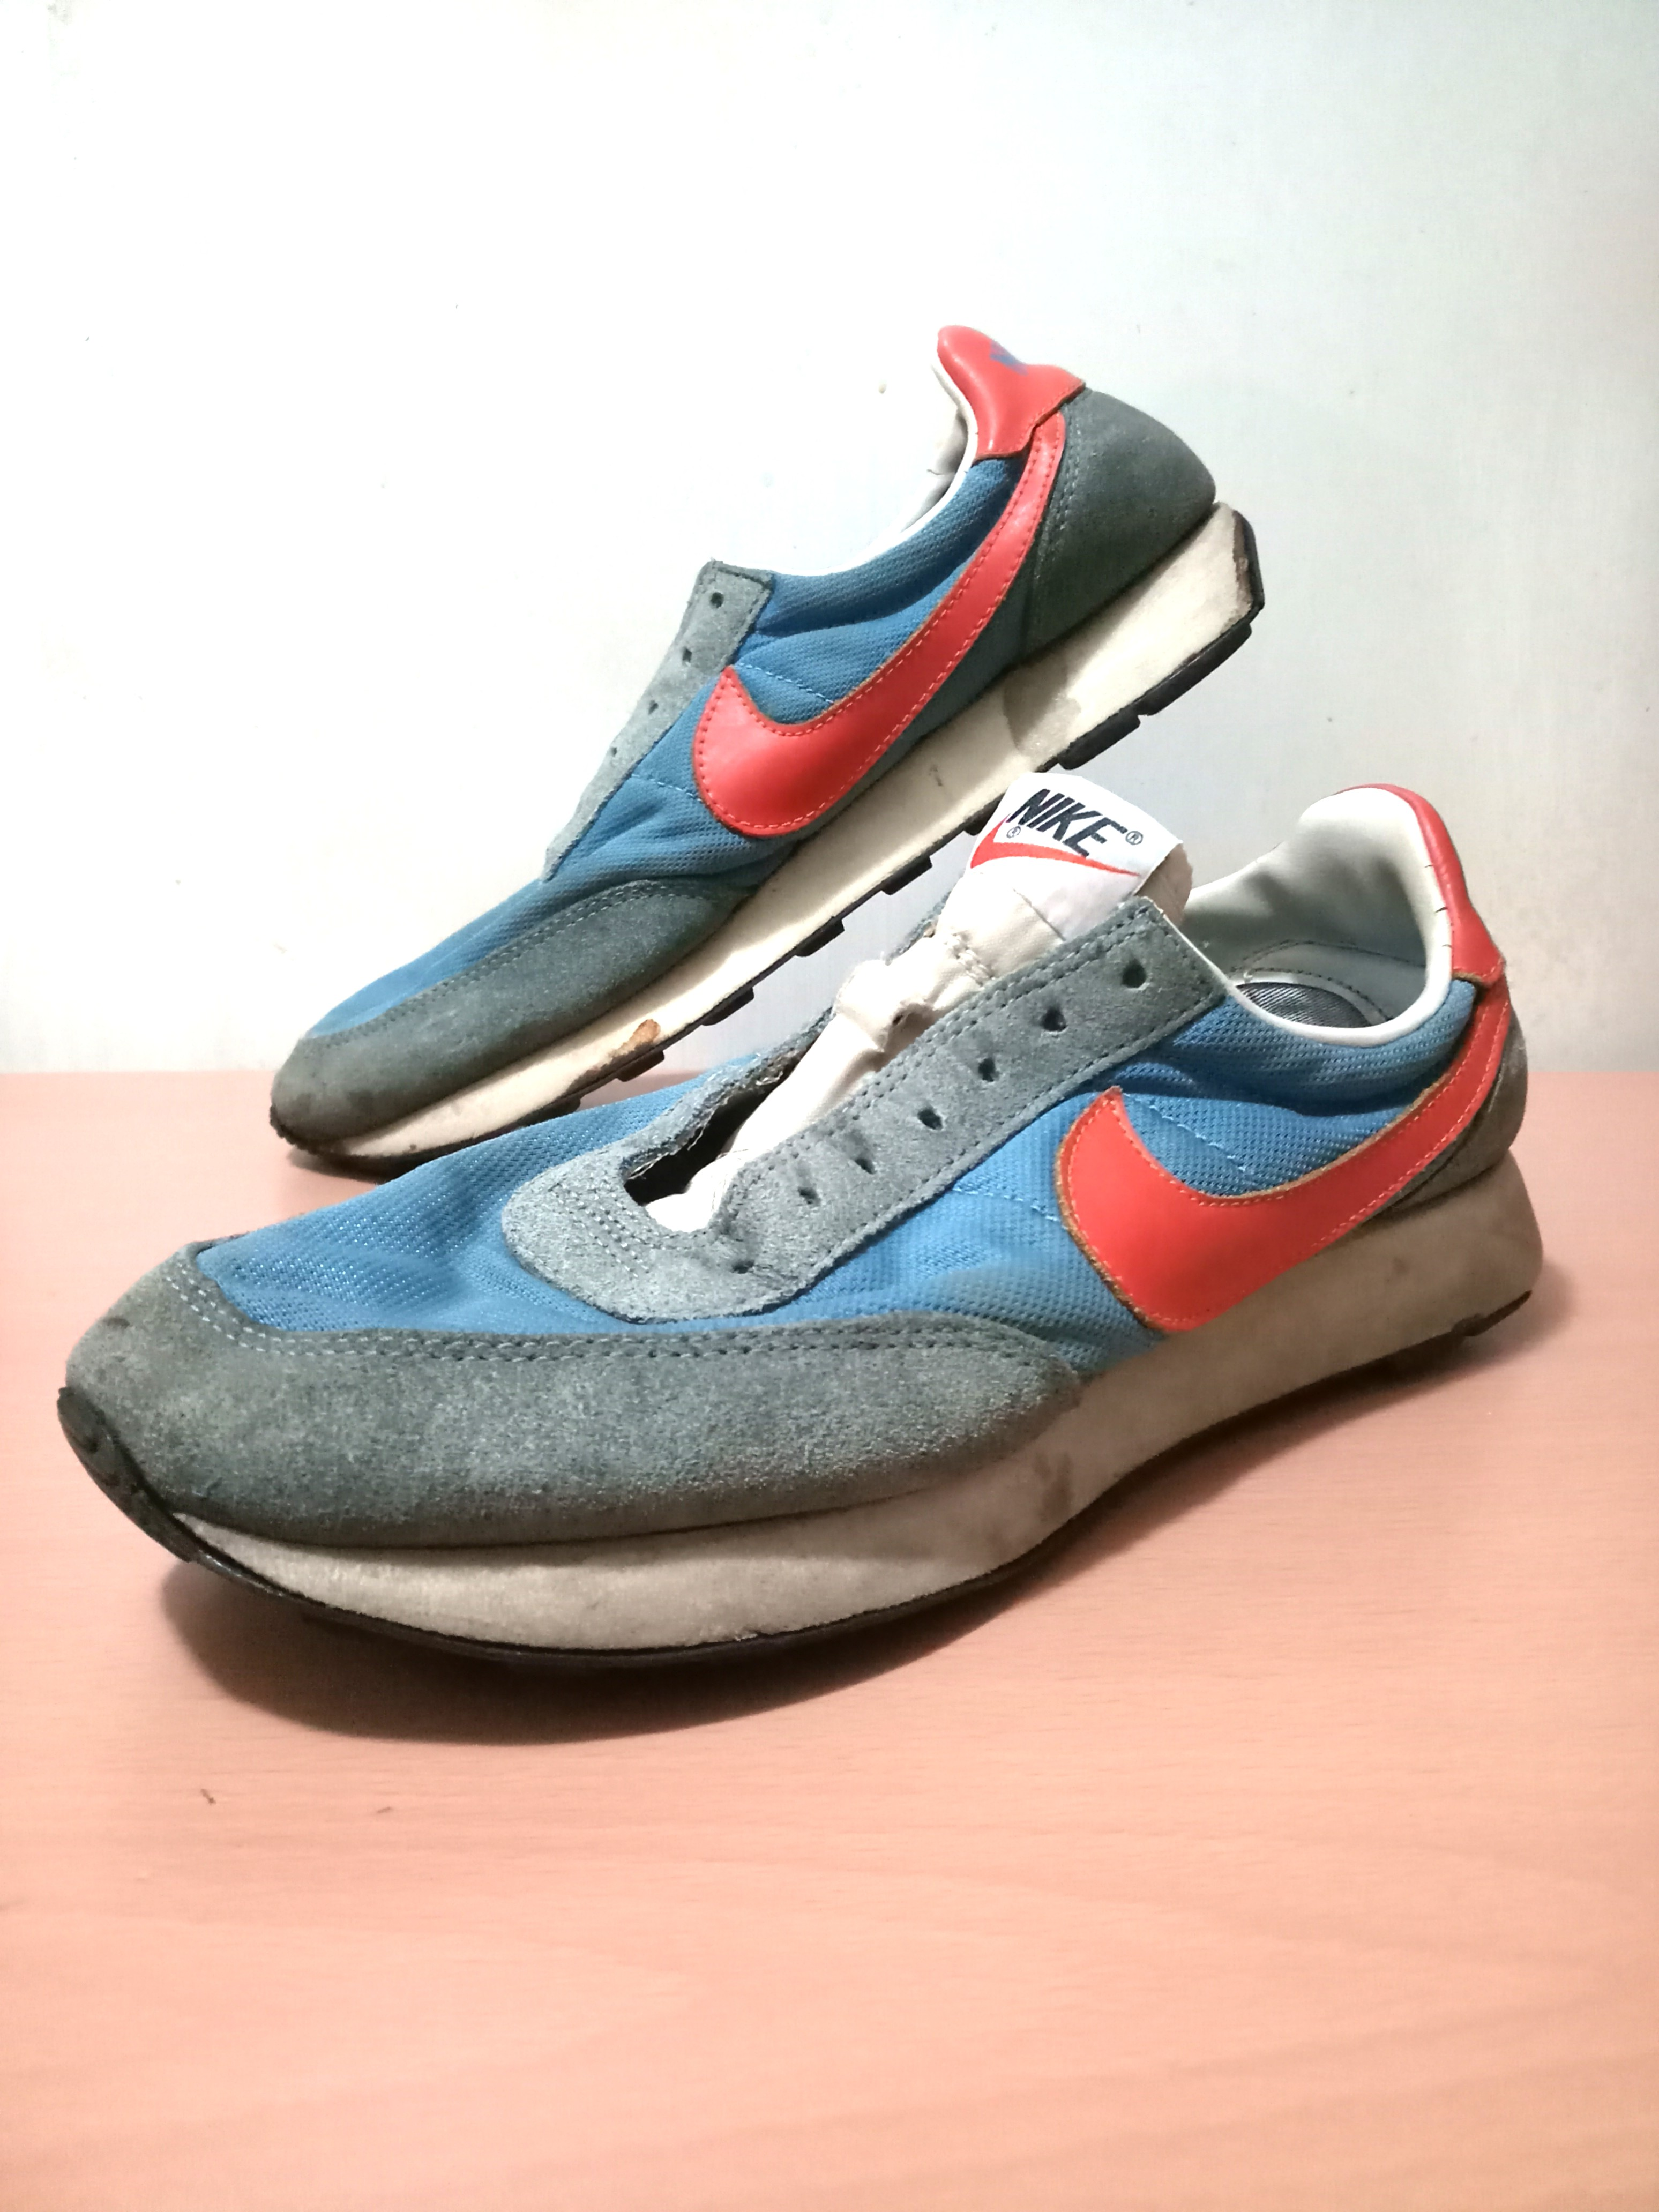 f34c907a261 Vintage Nike shoes, Men's Fashion, Footwear, Sneakers on Carousell